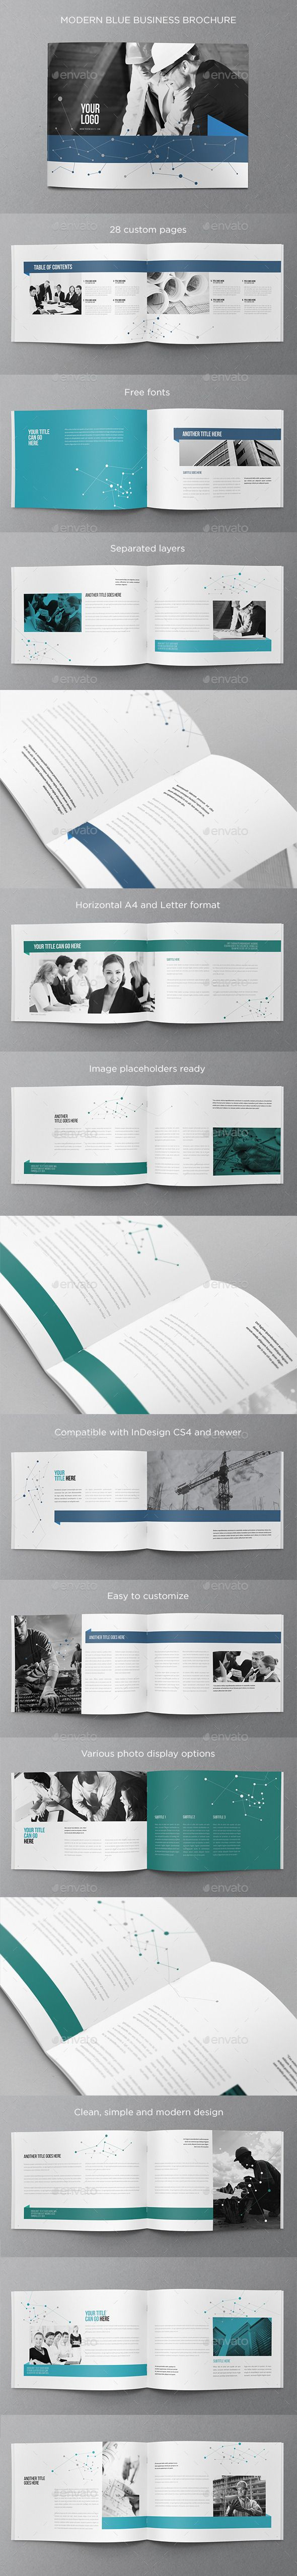 Modern Blue Business Brochure (CS4, 8.5x11, a4, blue, brochure, business, clean, corporate, flexible, letter, minimal, modern, professional, simple, white)